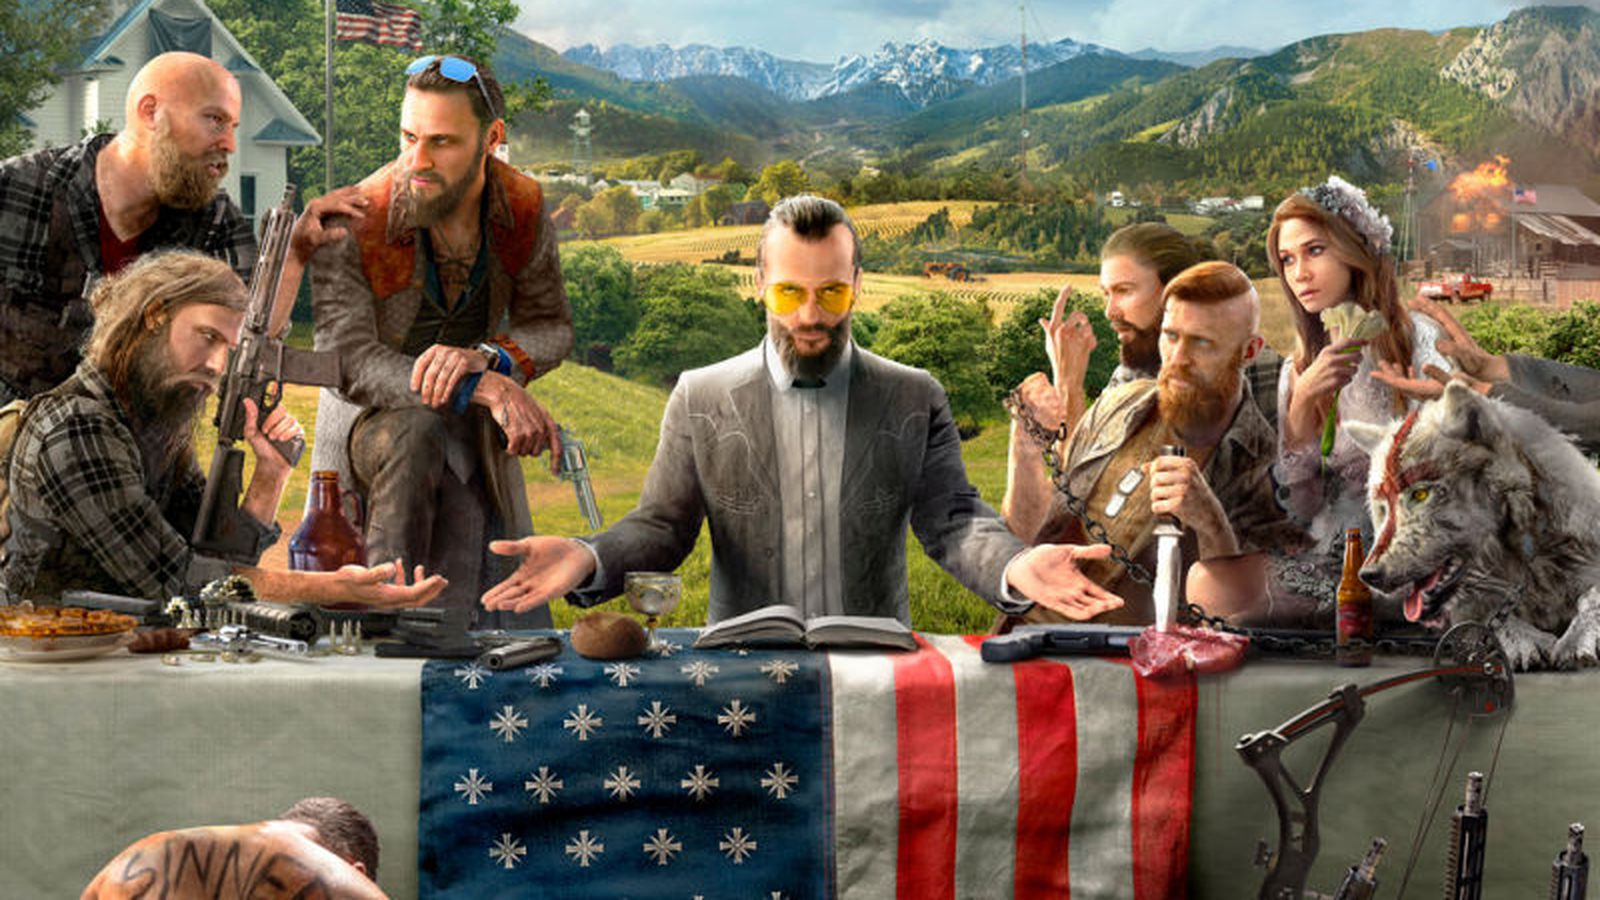 Far Cry 5 promises to be controversial, but not for the usual reasons